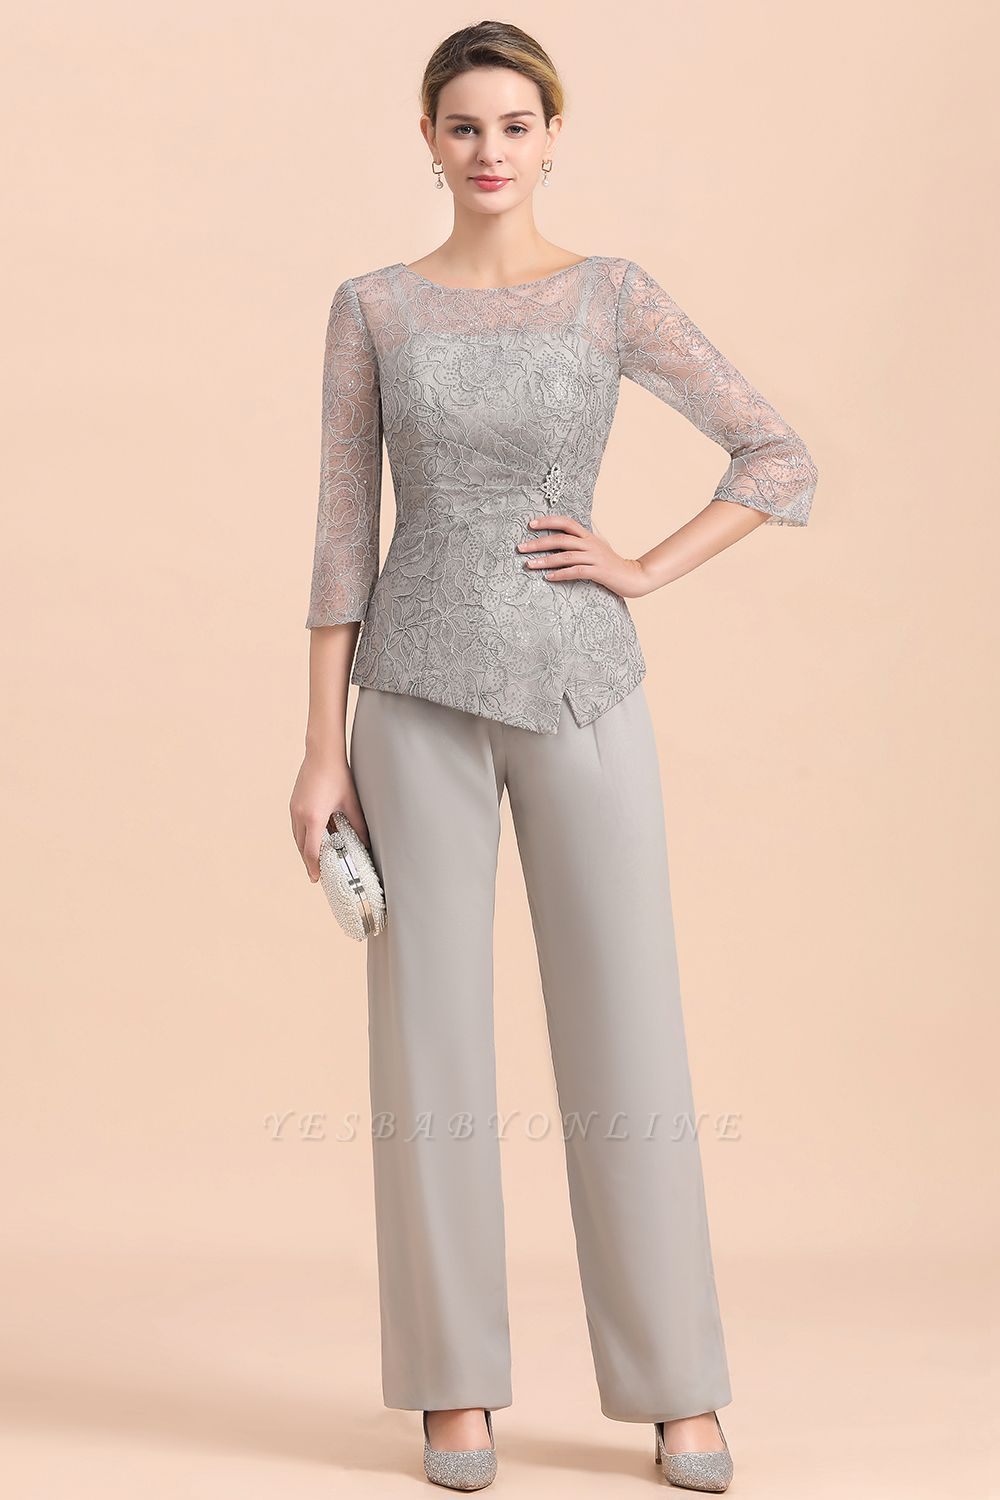 Elegant Smokey Blue Round Neck Half Sleeves Lace Mother of Bride Pants Suits